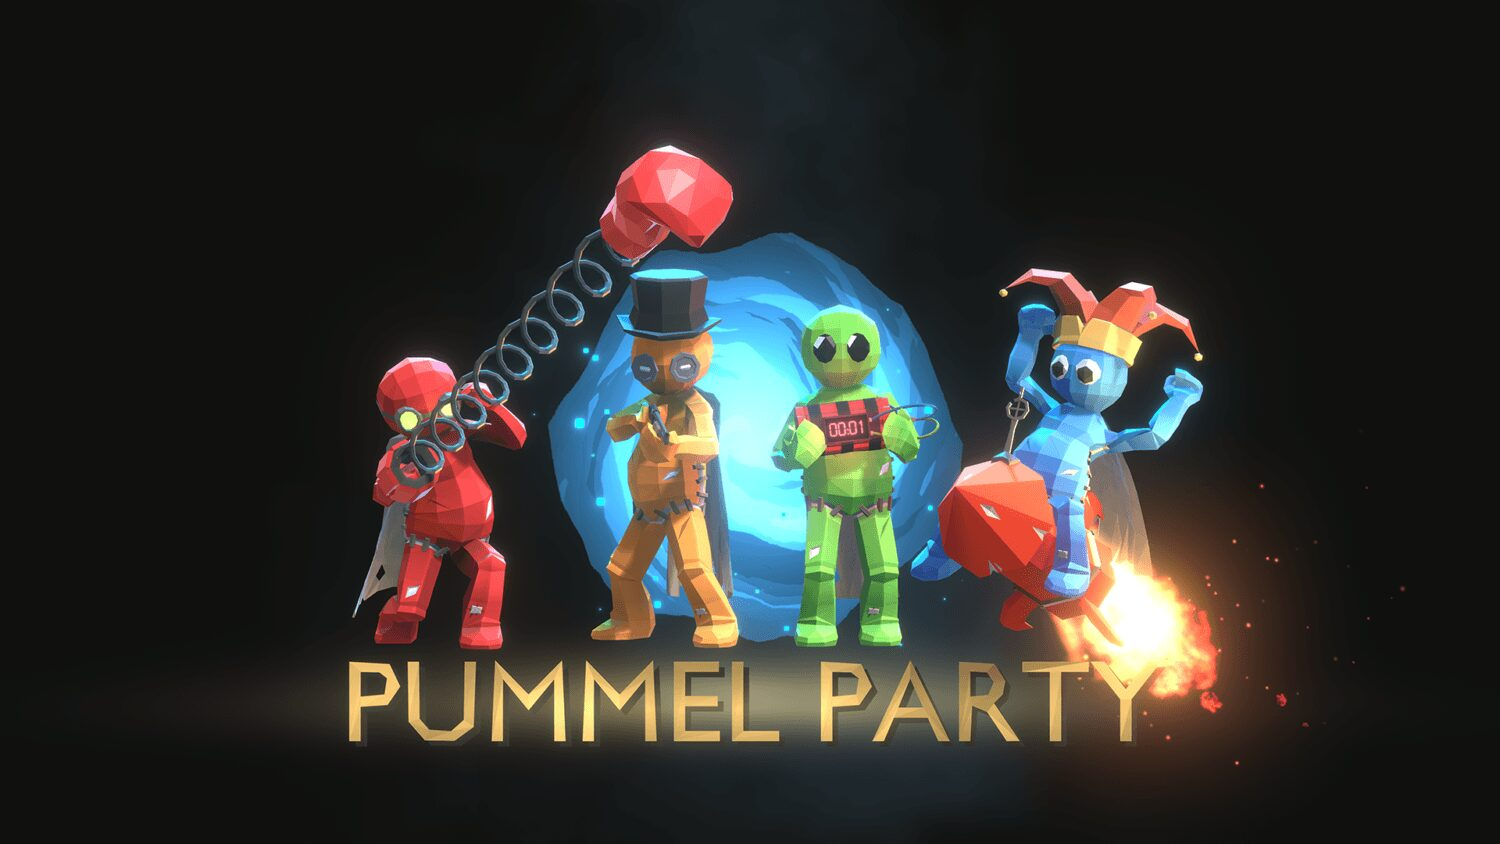 pummel-party-jeux-video-coronavirus